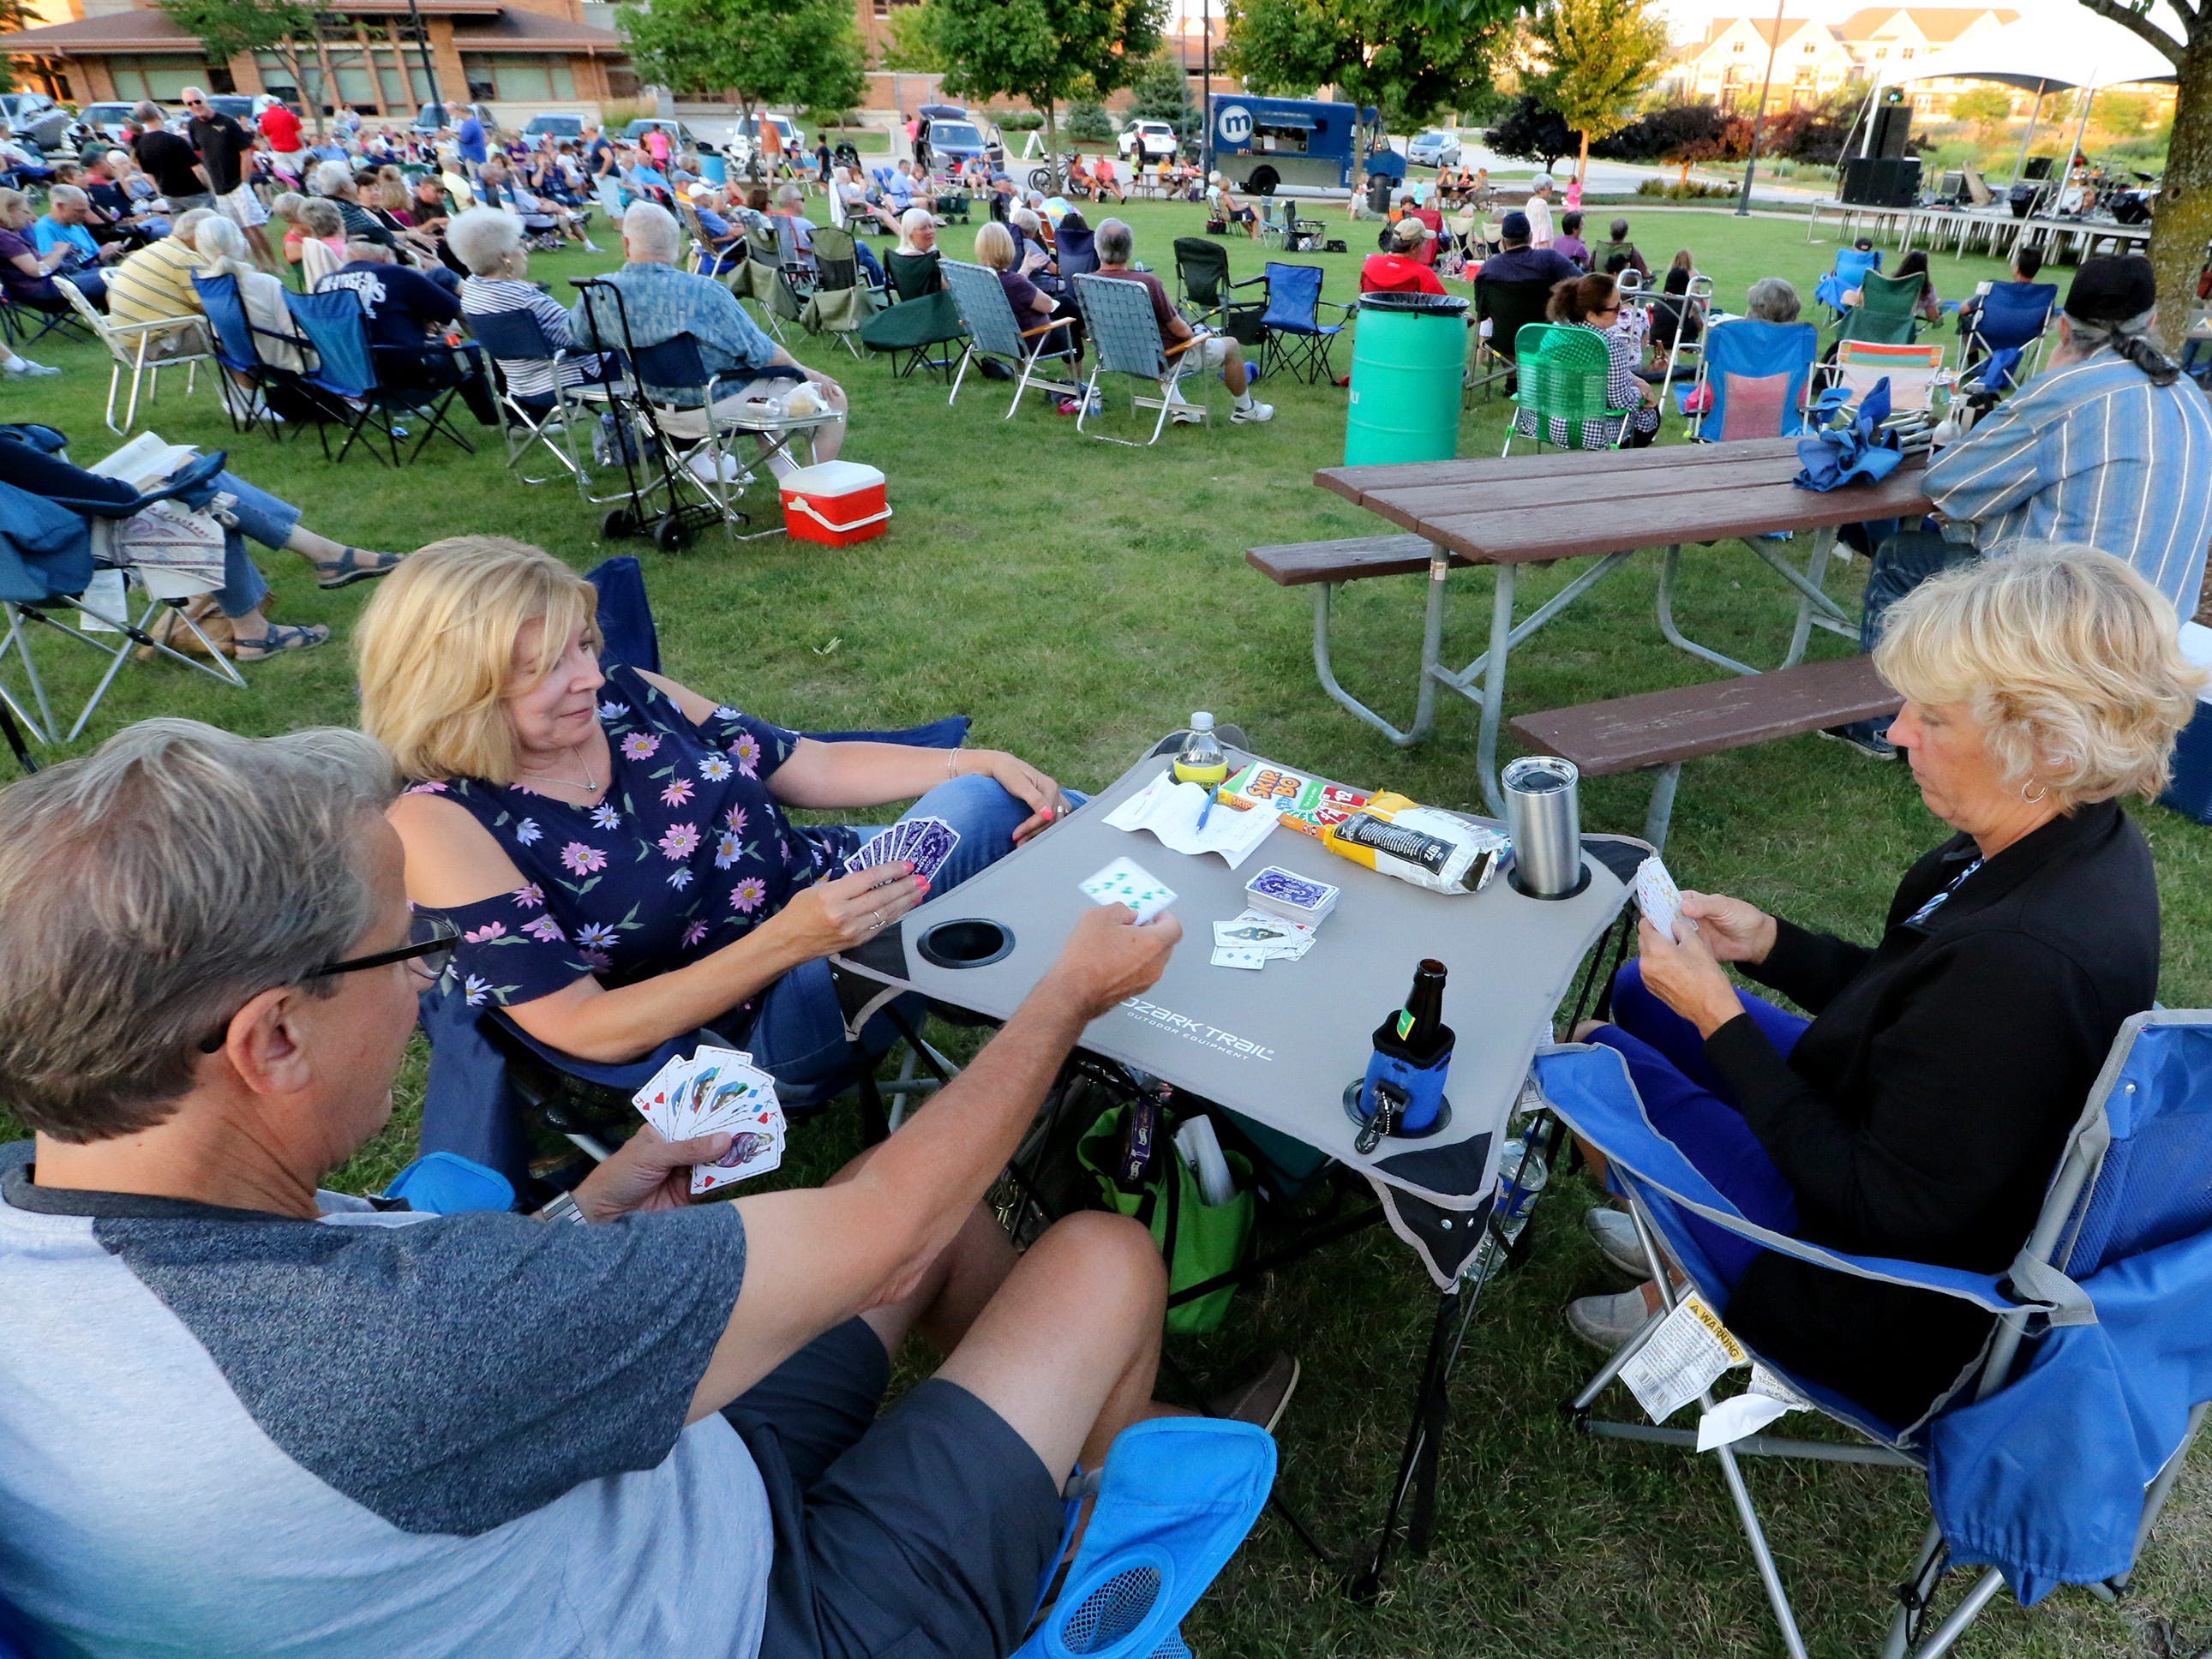 Don and Dawn Janczak of Genesee (left) and Wendy Petzold of Florida play the card game Five Crowns while listening to Streetlife with Warren Wiegratz at a New Berlin Concerts at City Center on Aug. 8.